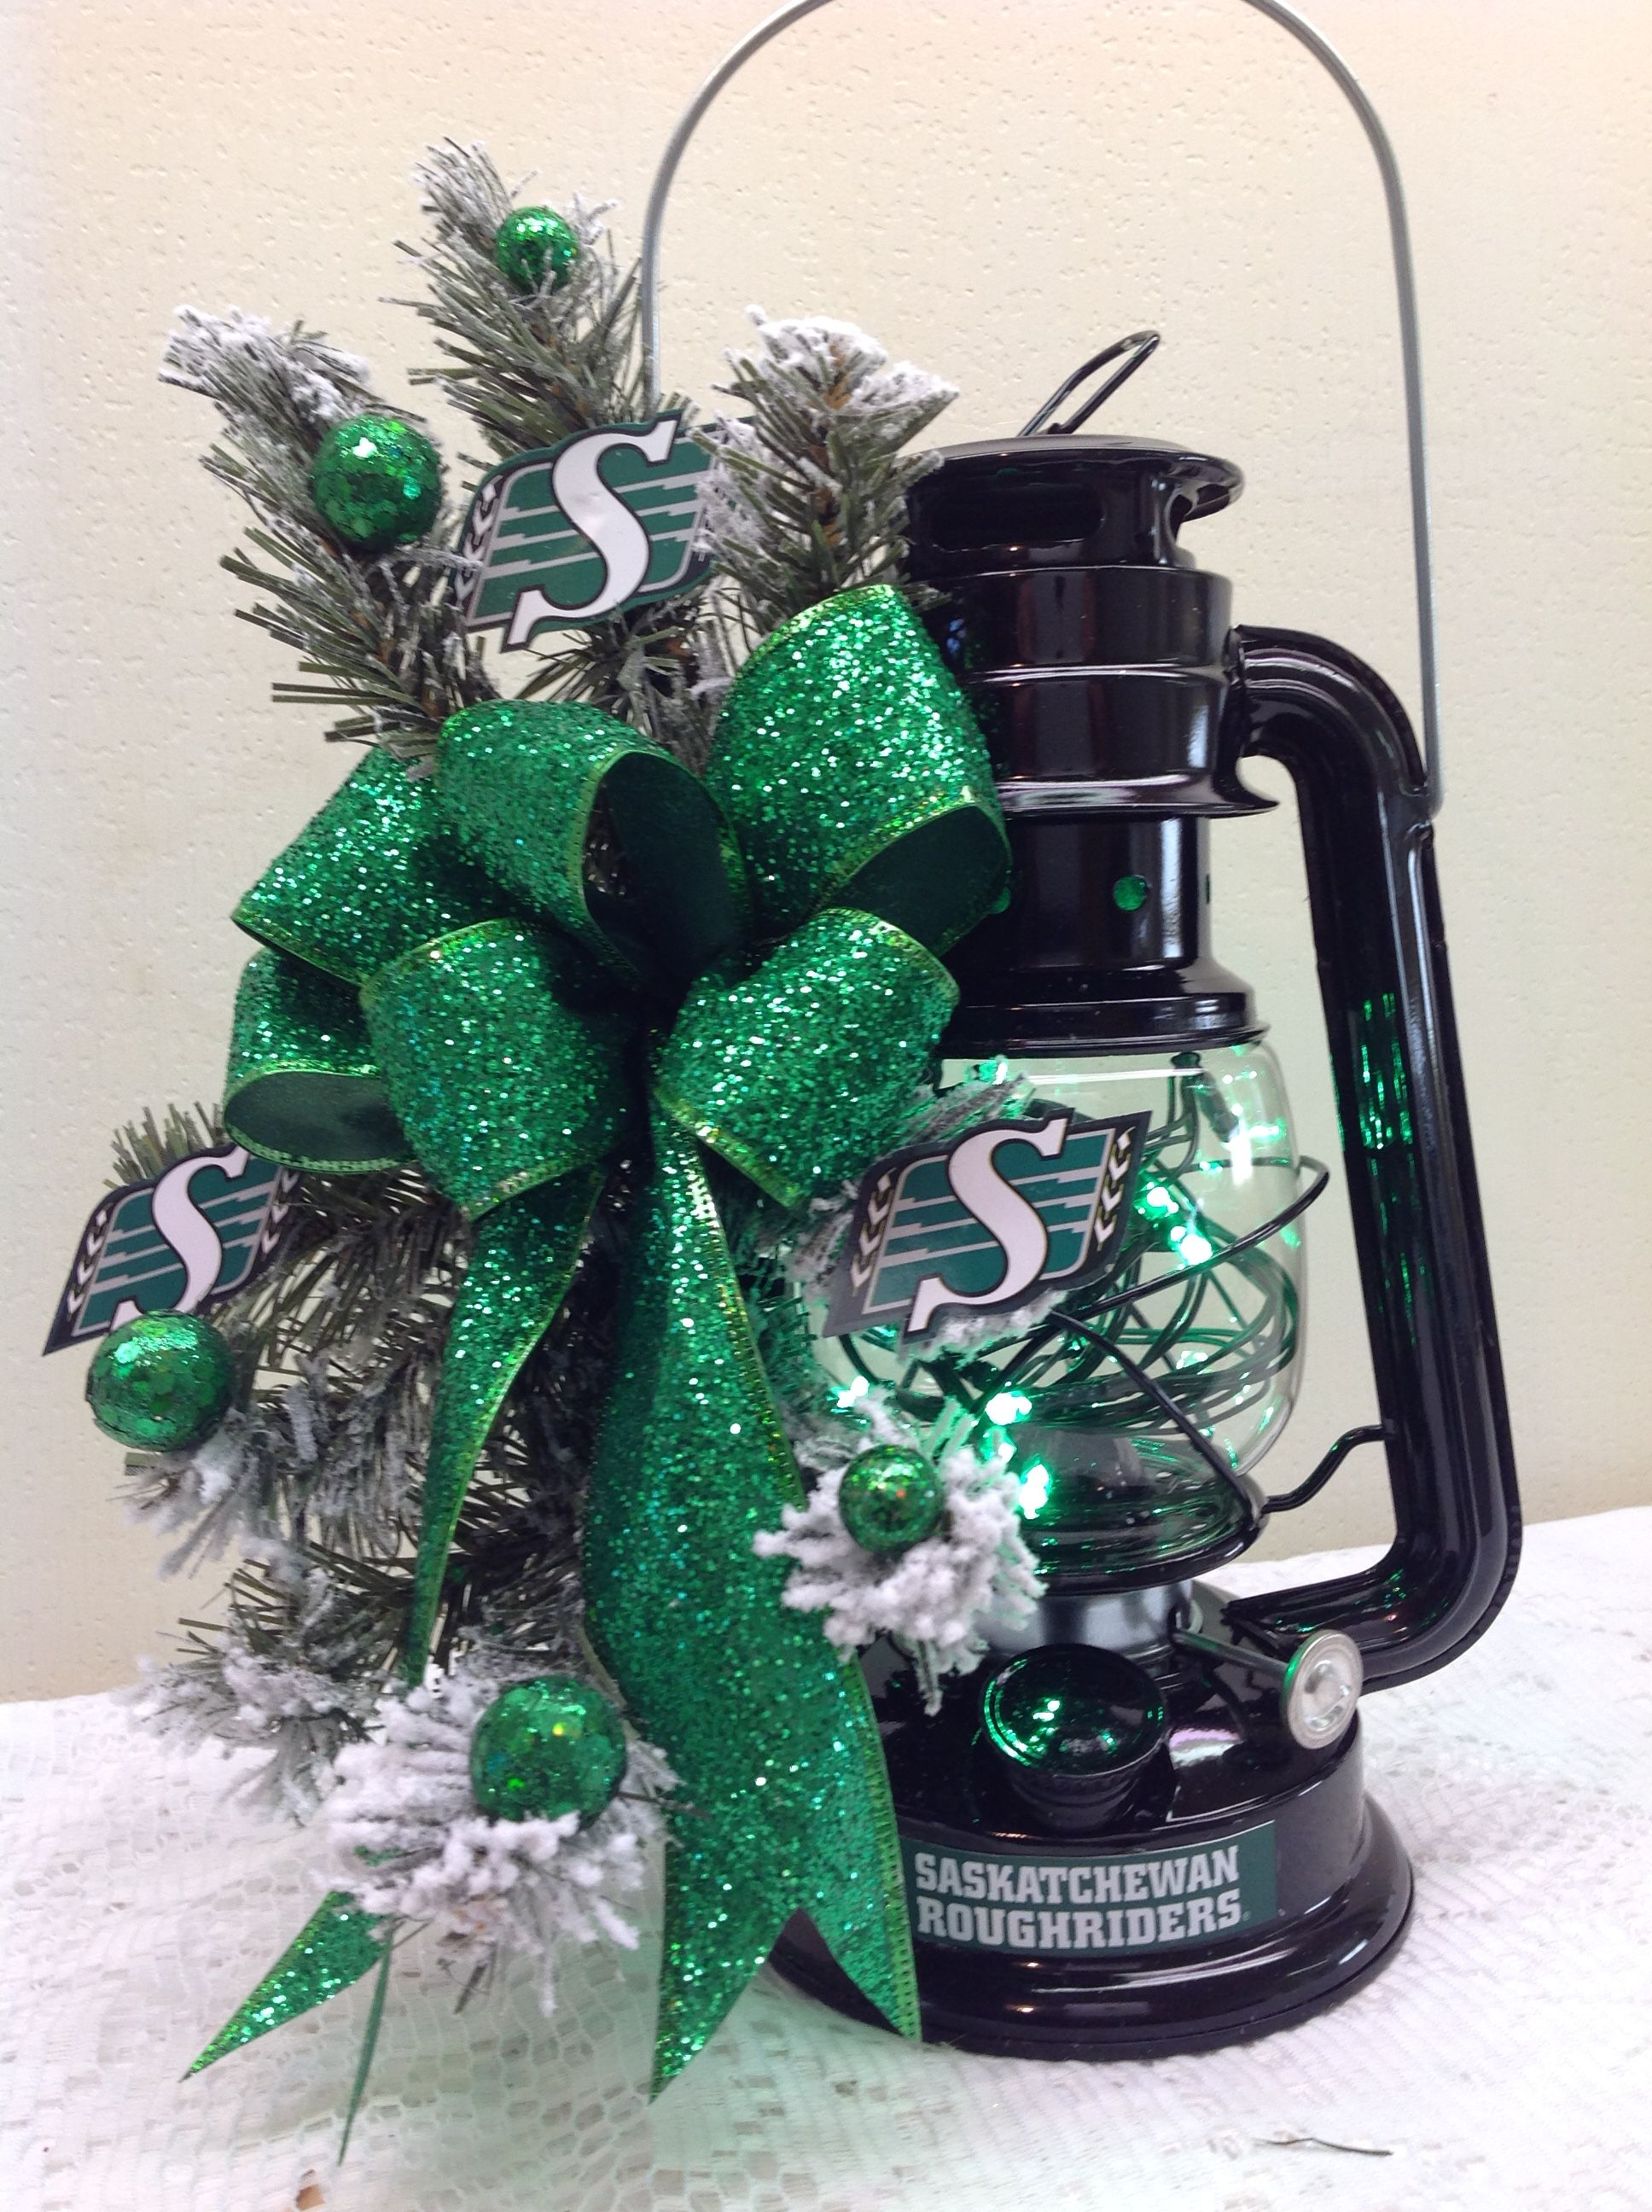 bows greens pin lighting to flocked lanterns led lights green small roughrider